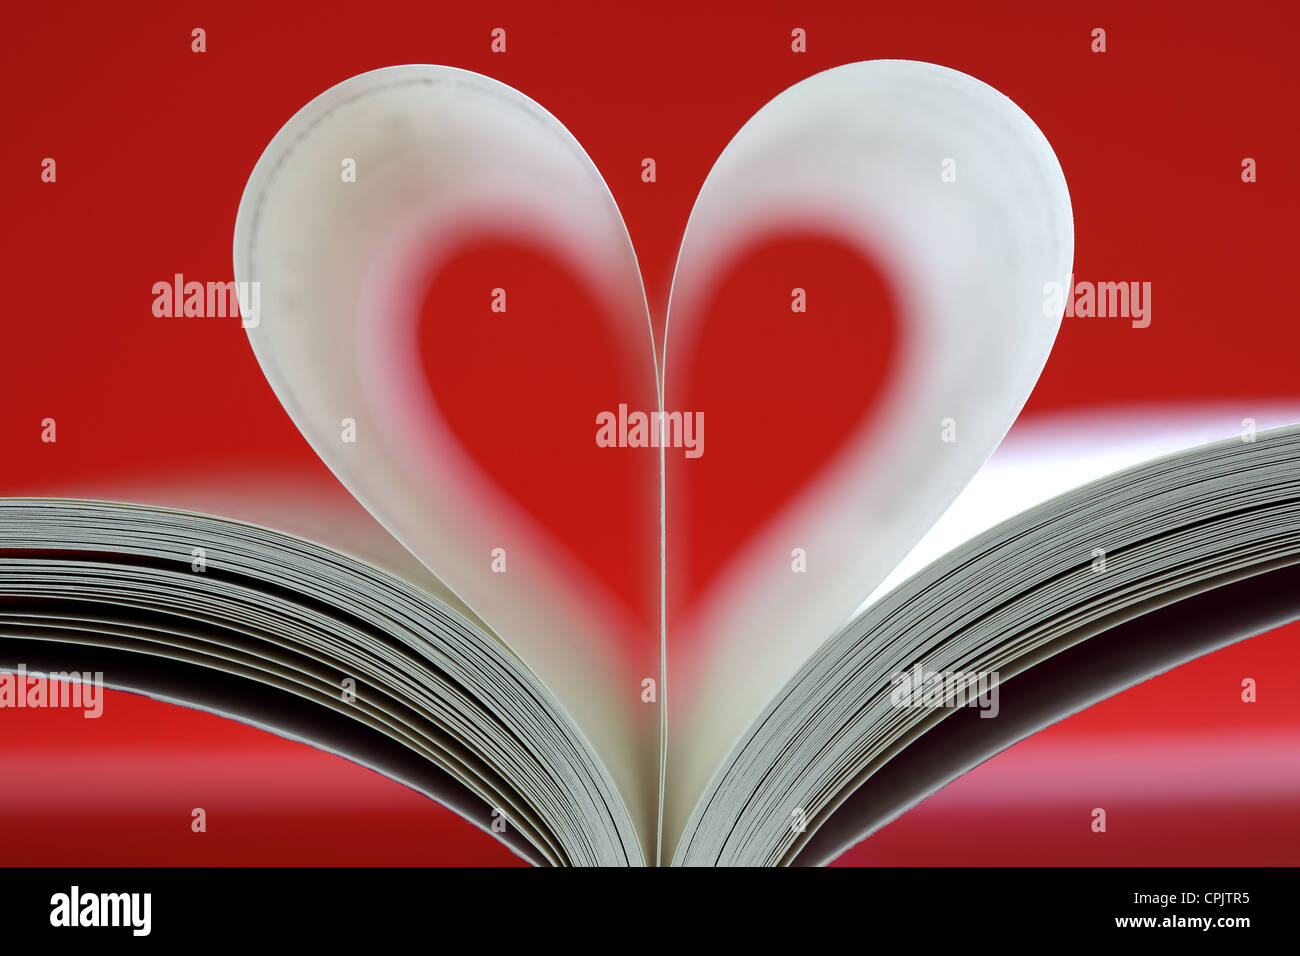 Livre en forme de coeur Photo Stock